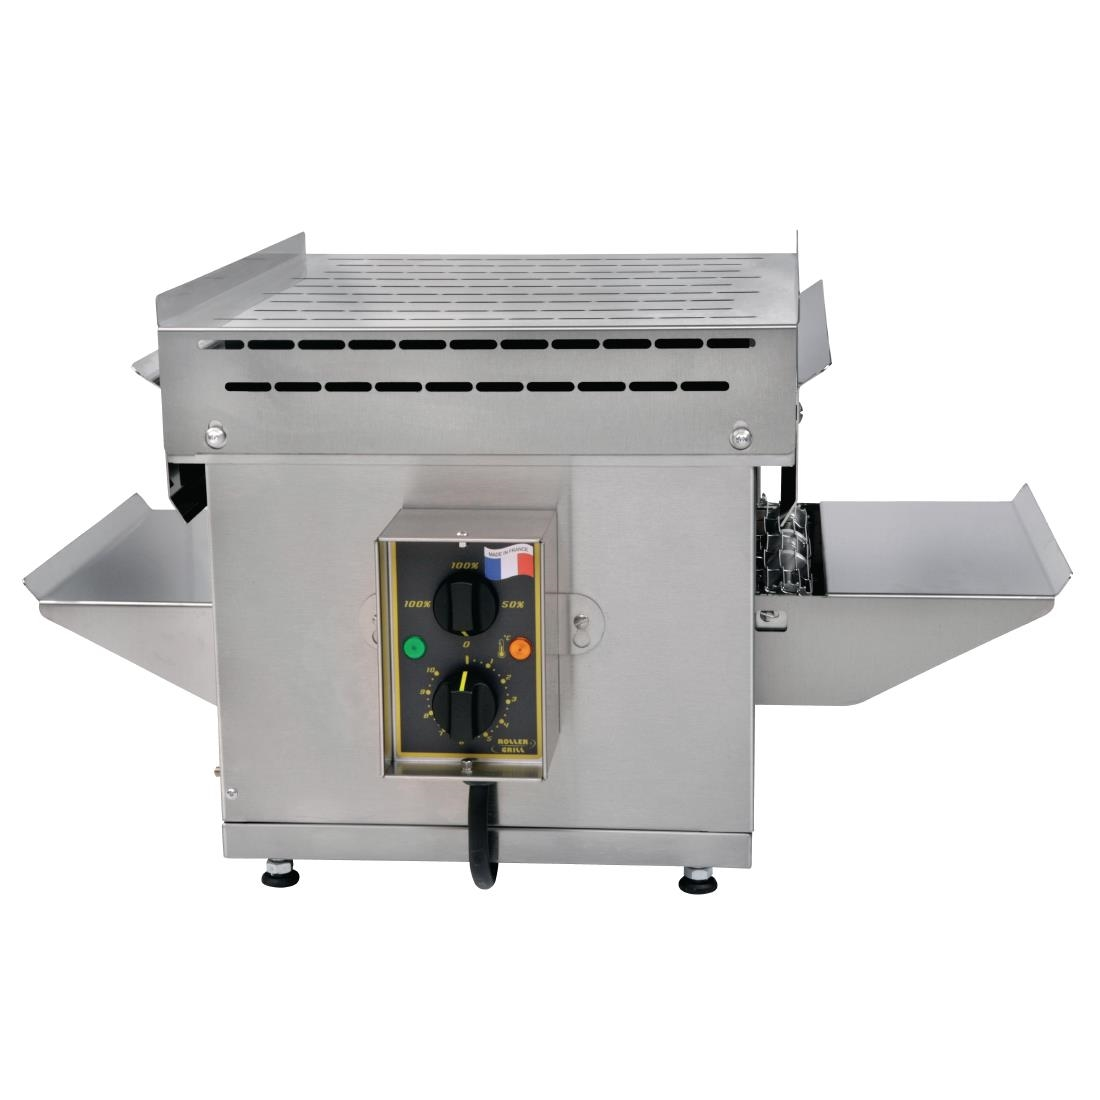 Roller Grill Conveyor Oven CT3000